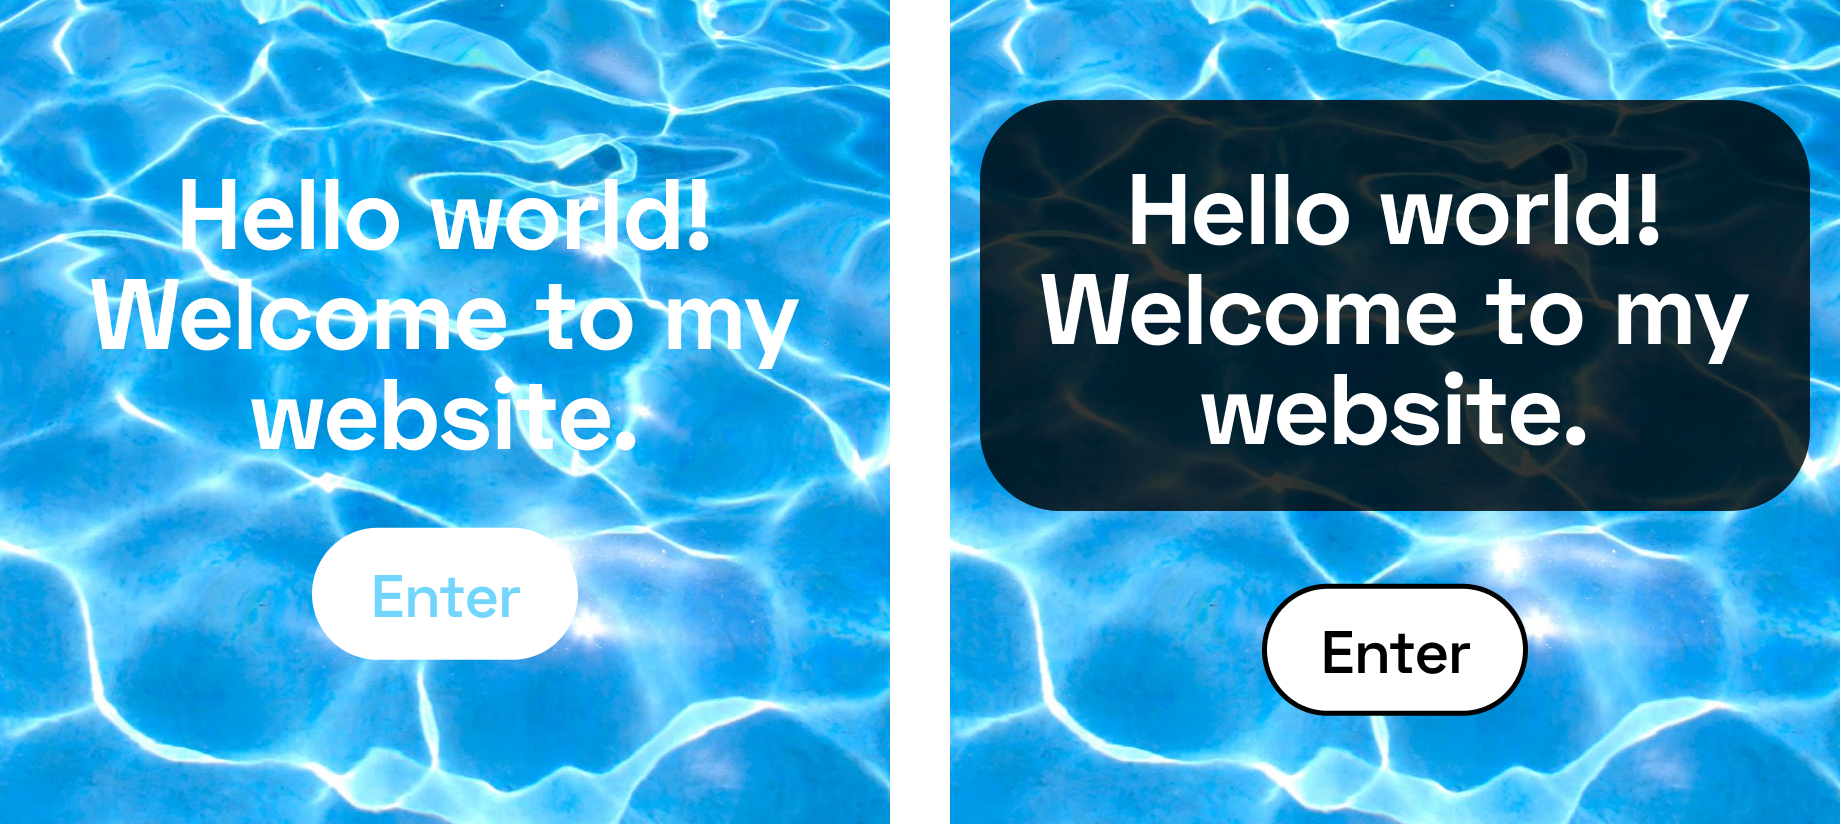 Two square images of a water background with white text, one with low contrast one with high contrast